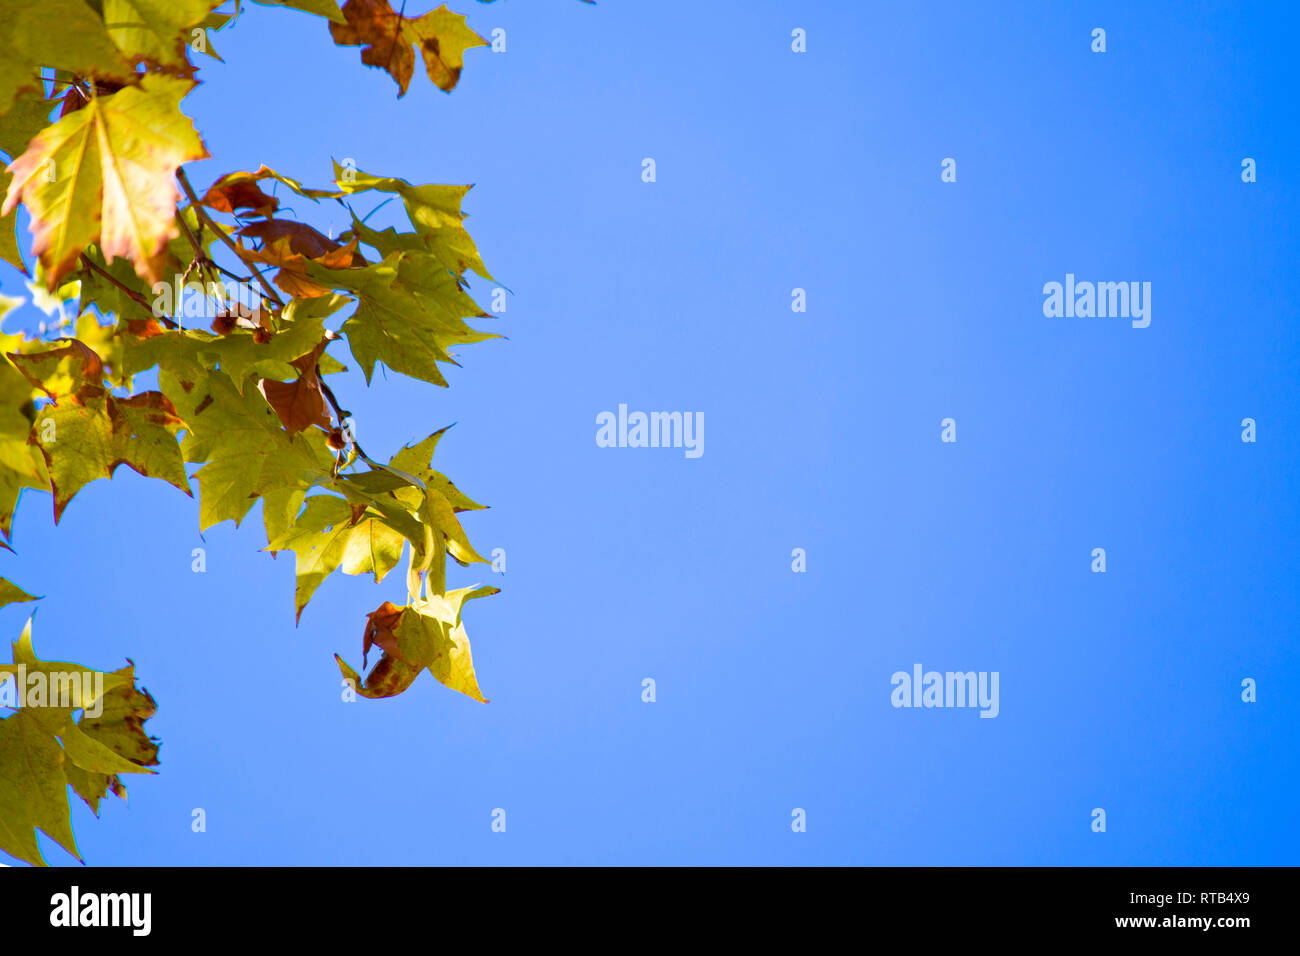 Autumn maple tree branches leaves on blue sky background. - Stock Image